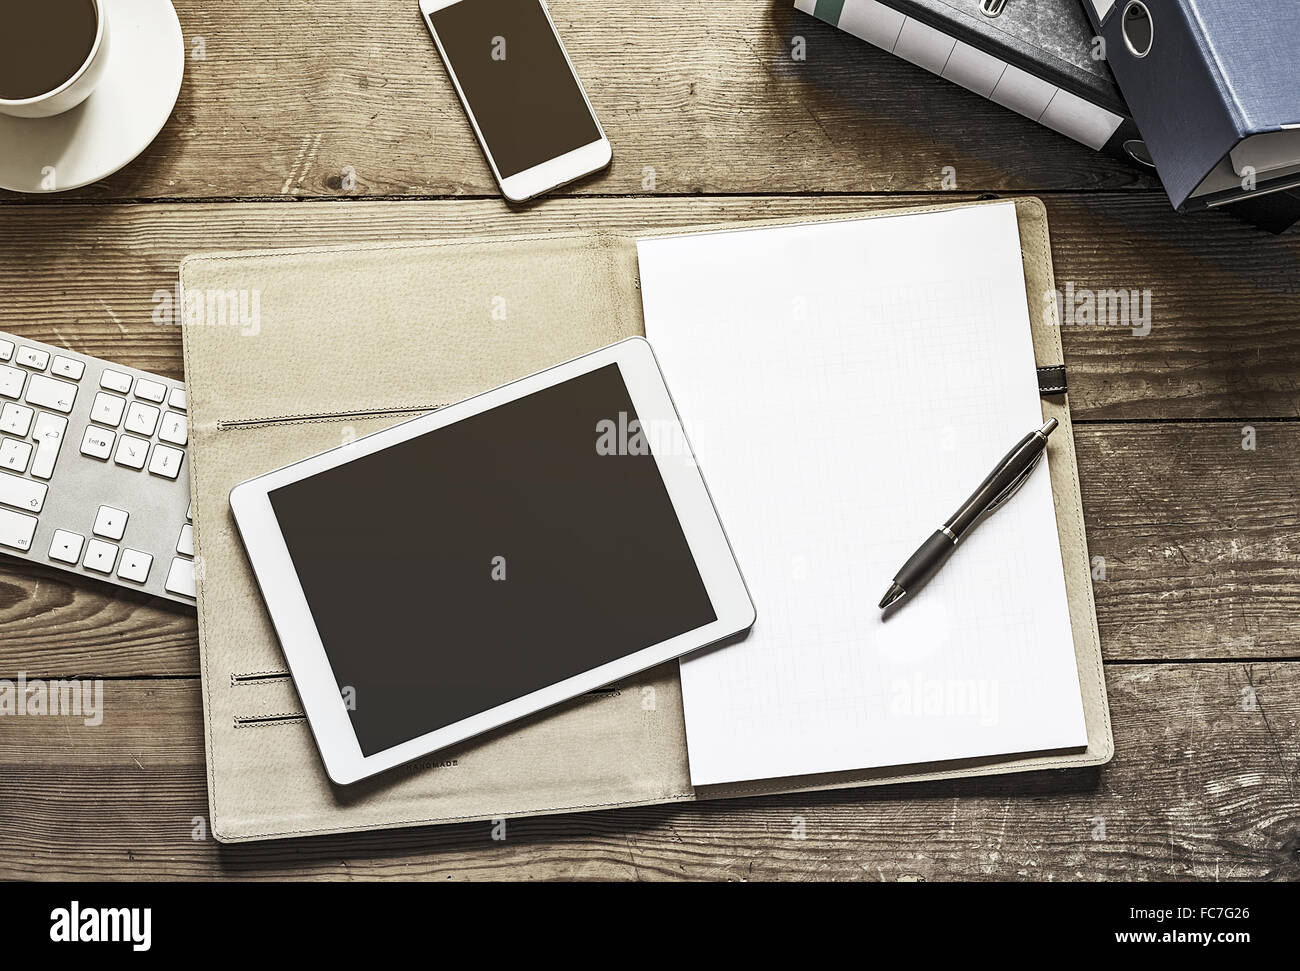 tablet and phone with folder - Stock Image